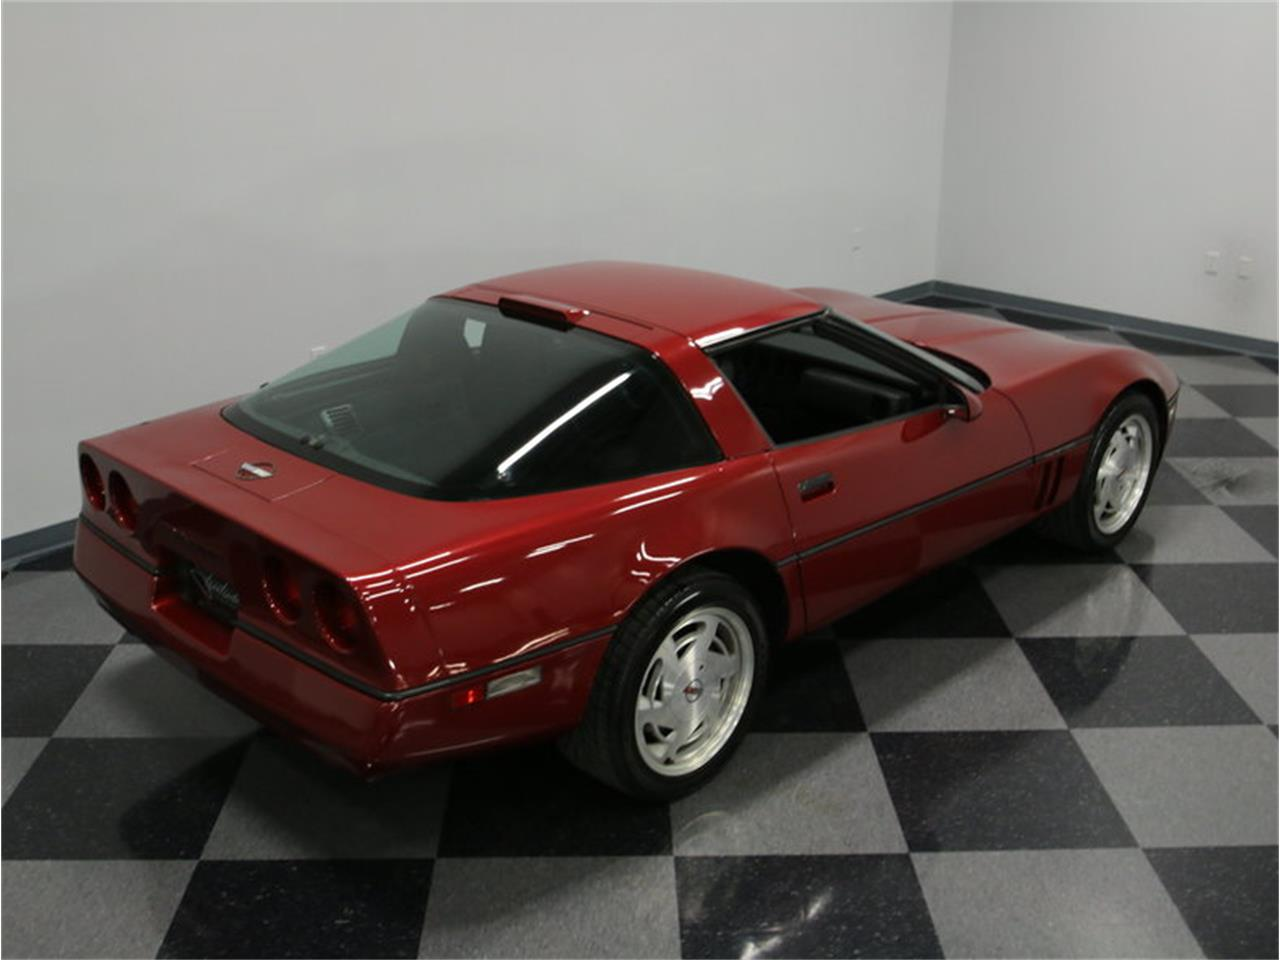 Large Picture of '89 Chevrolet Corvette located in Tennessee - $11,995.00 - IKOA